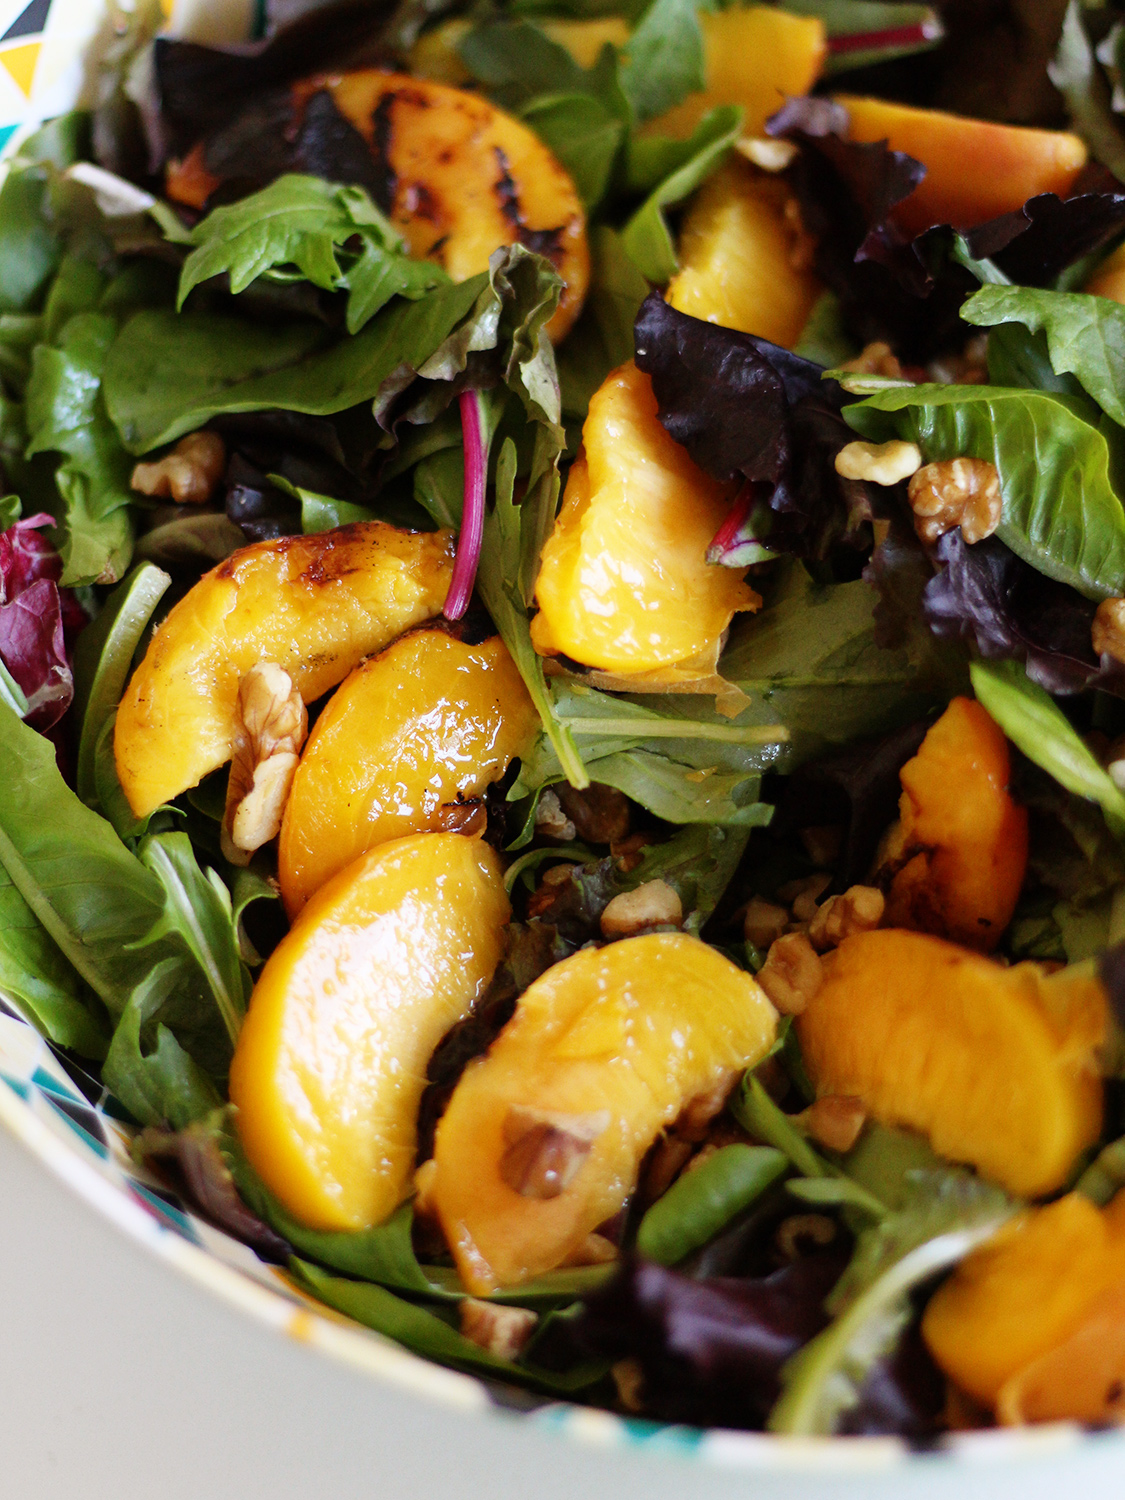 Grilled Peach Salad w/ Honey Goat Cheese Dressing from ssheart.com/blog